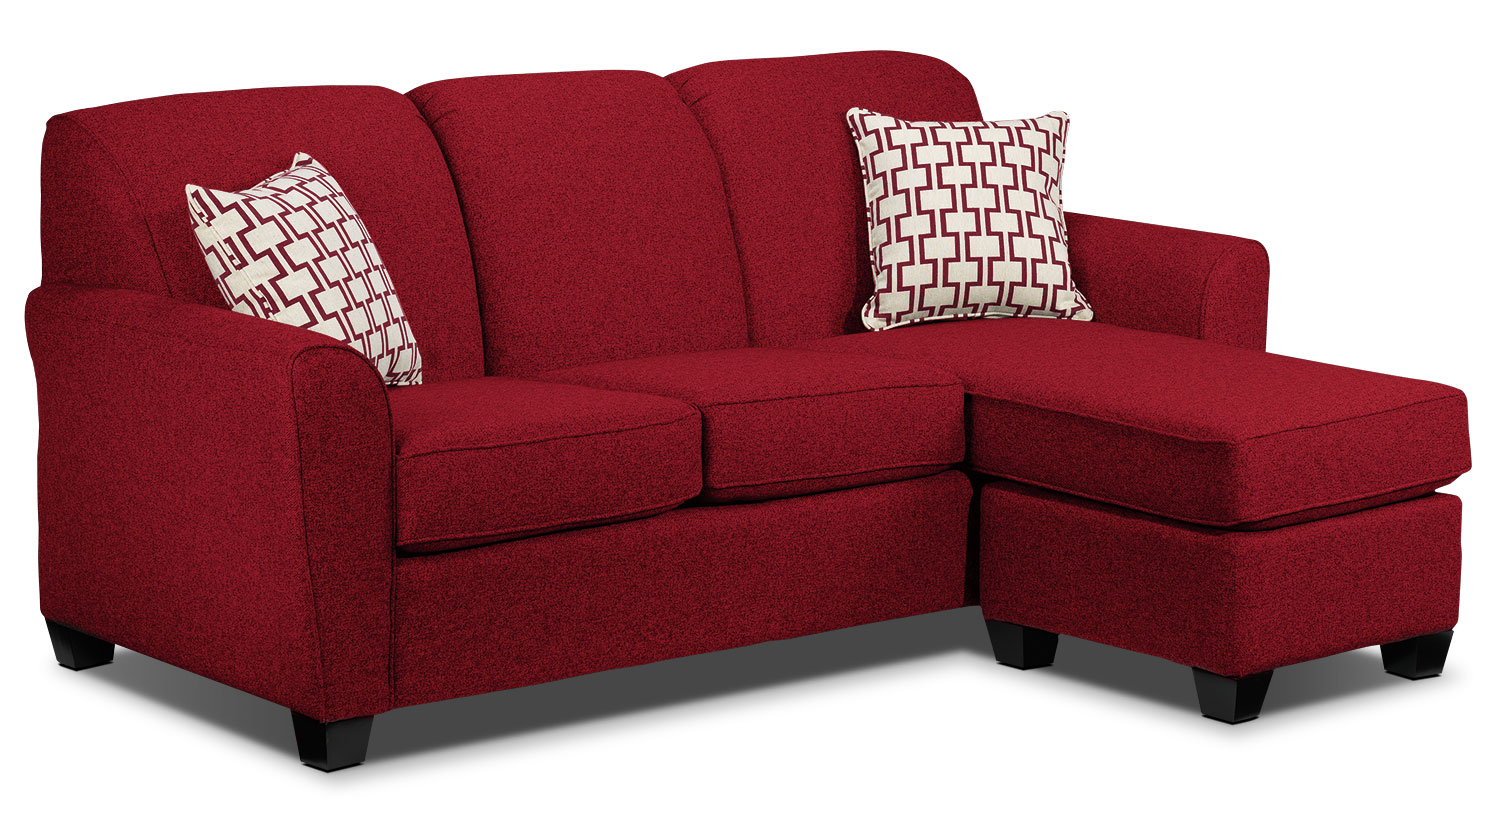 Living Room Furniture - Ashby Chaise Sofa - Red